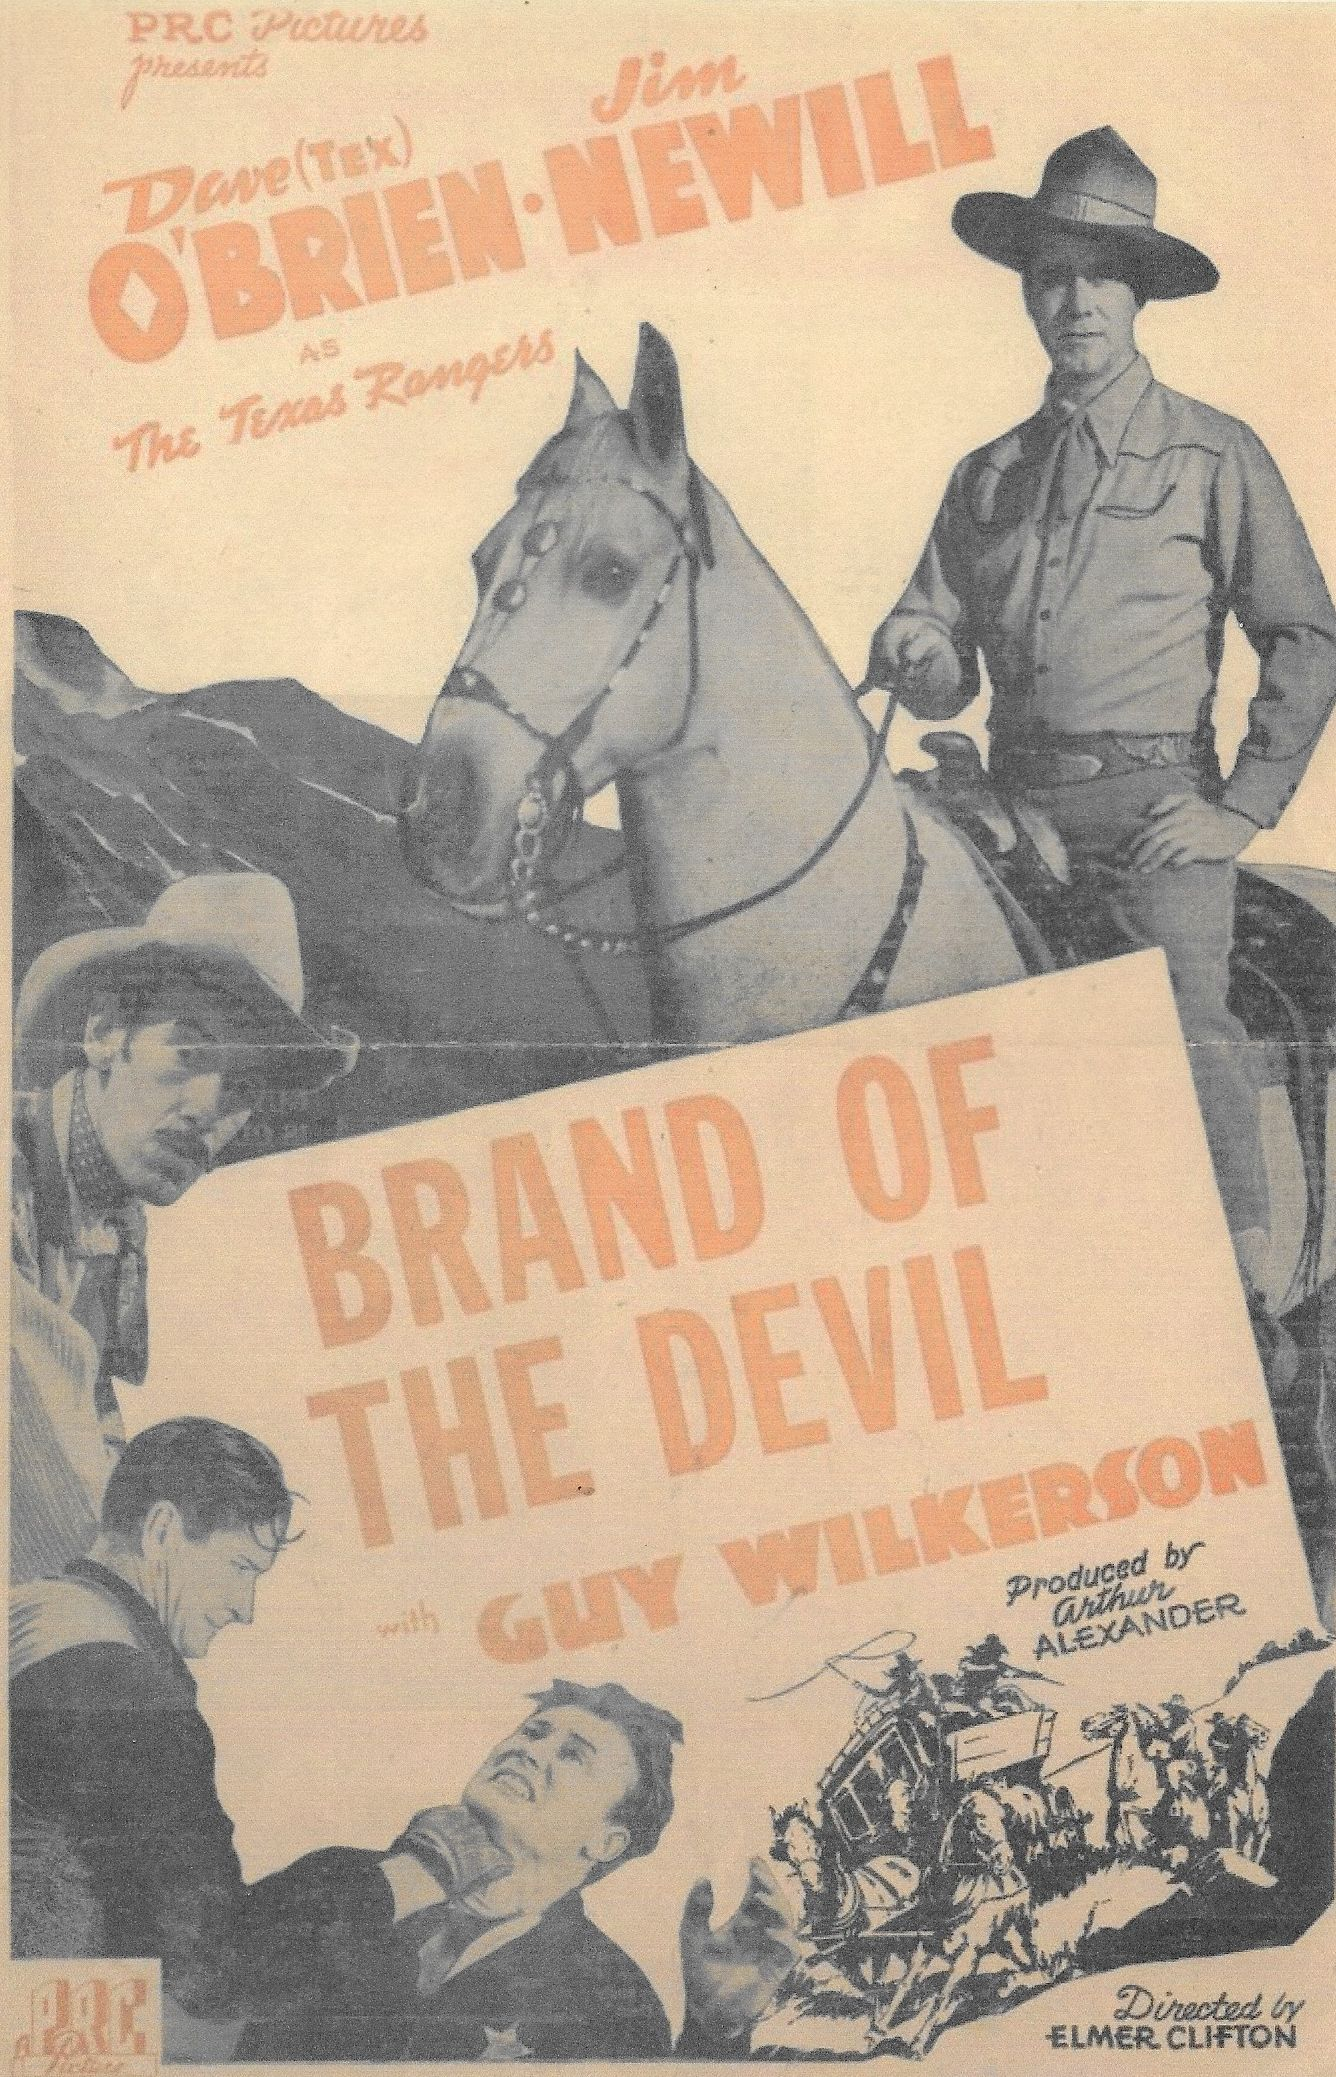 James Newill, Dave O'Brien, and Guy Wilkerson in Brand of the Devil (1944)